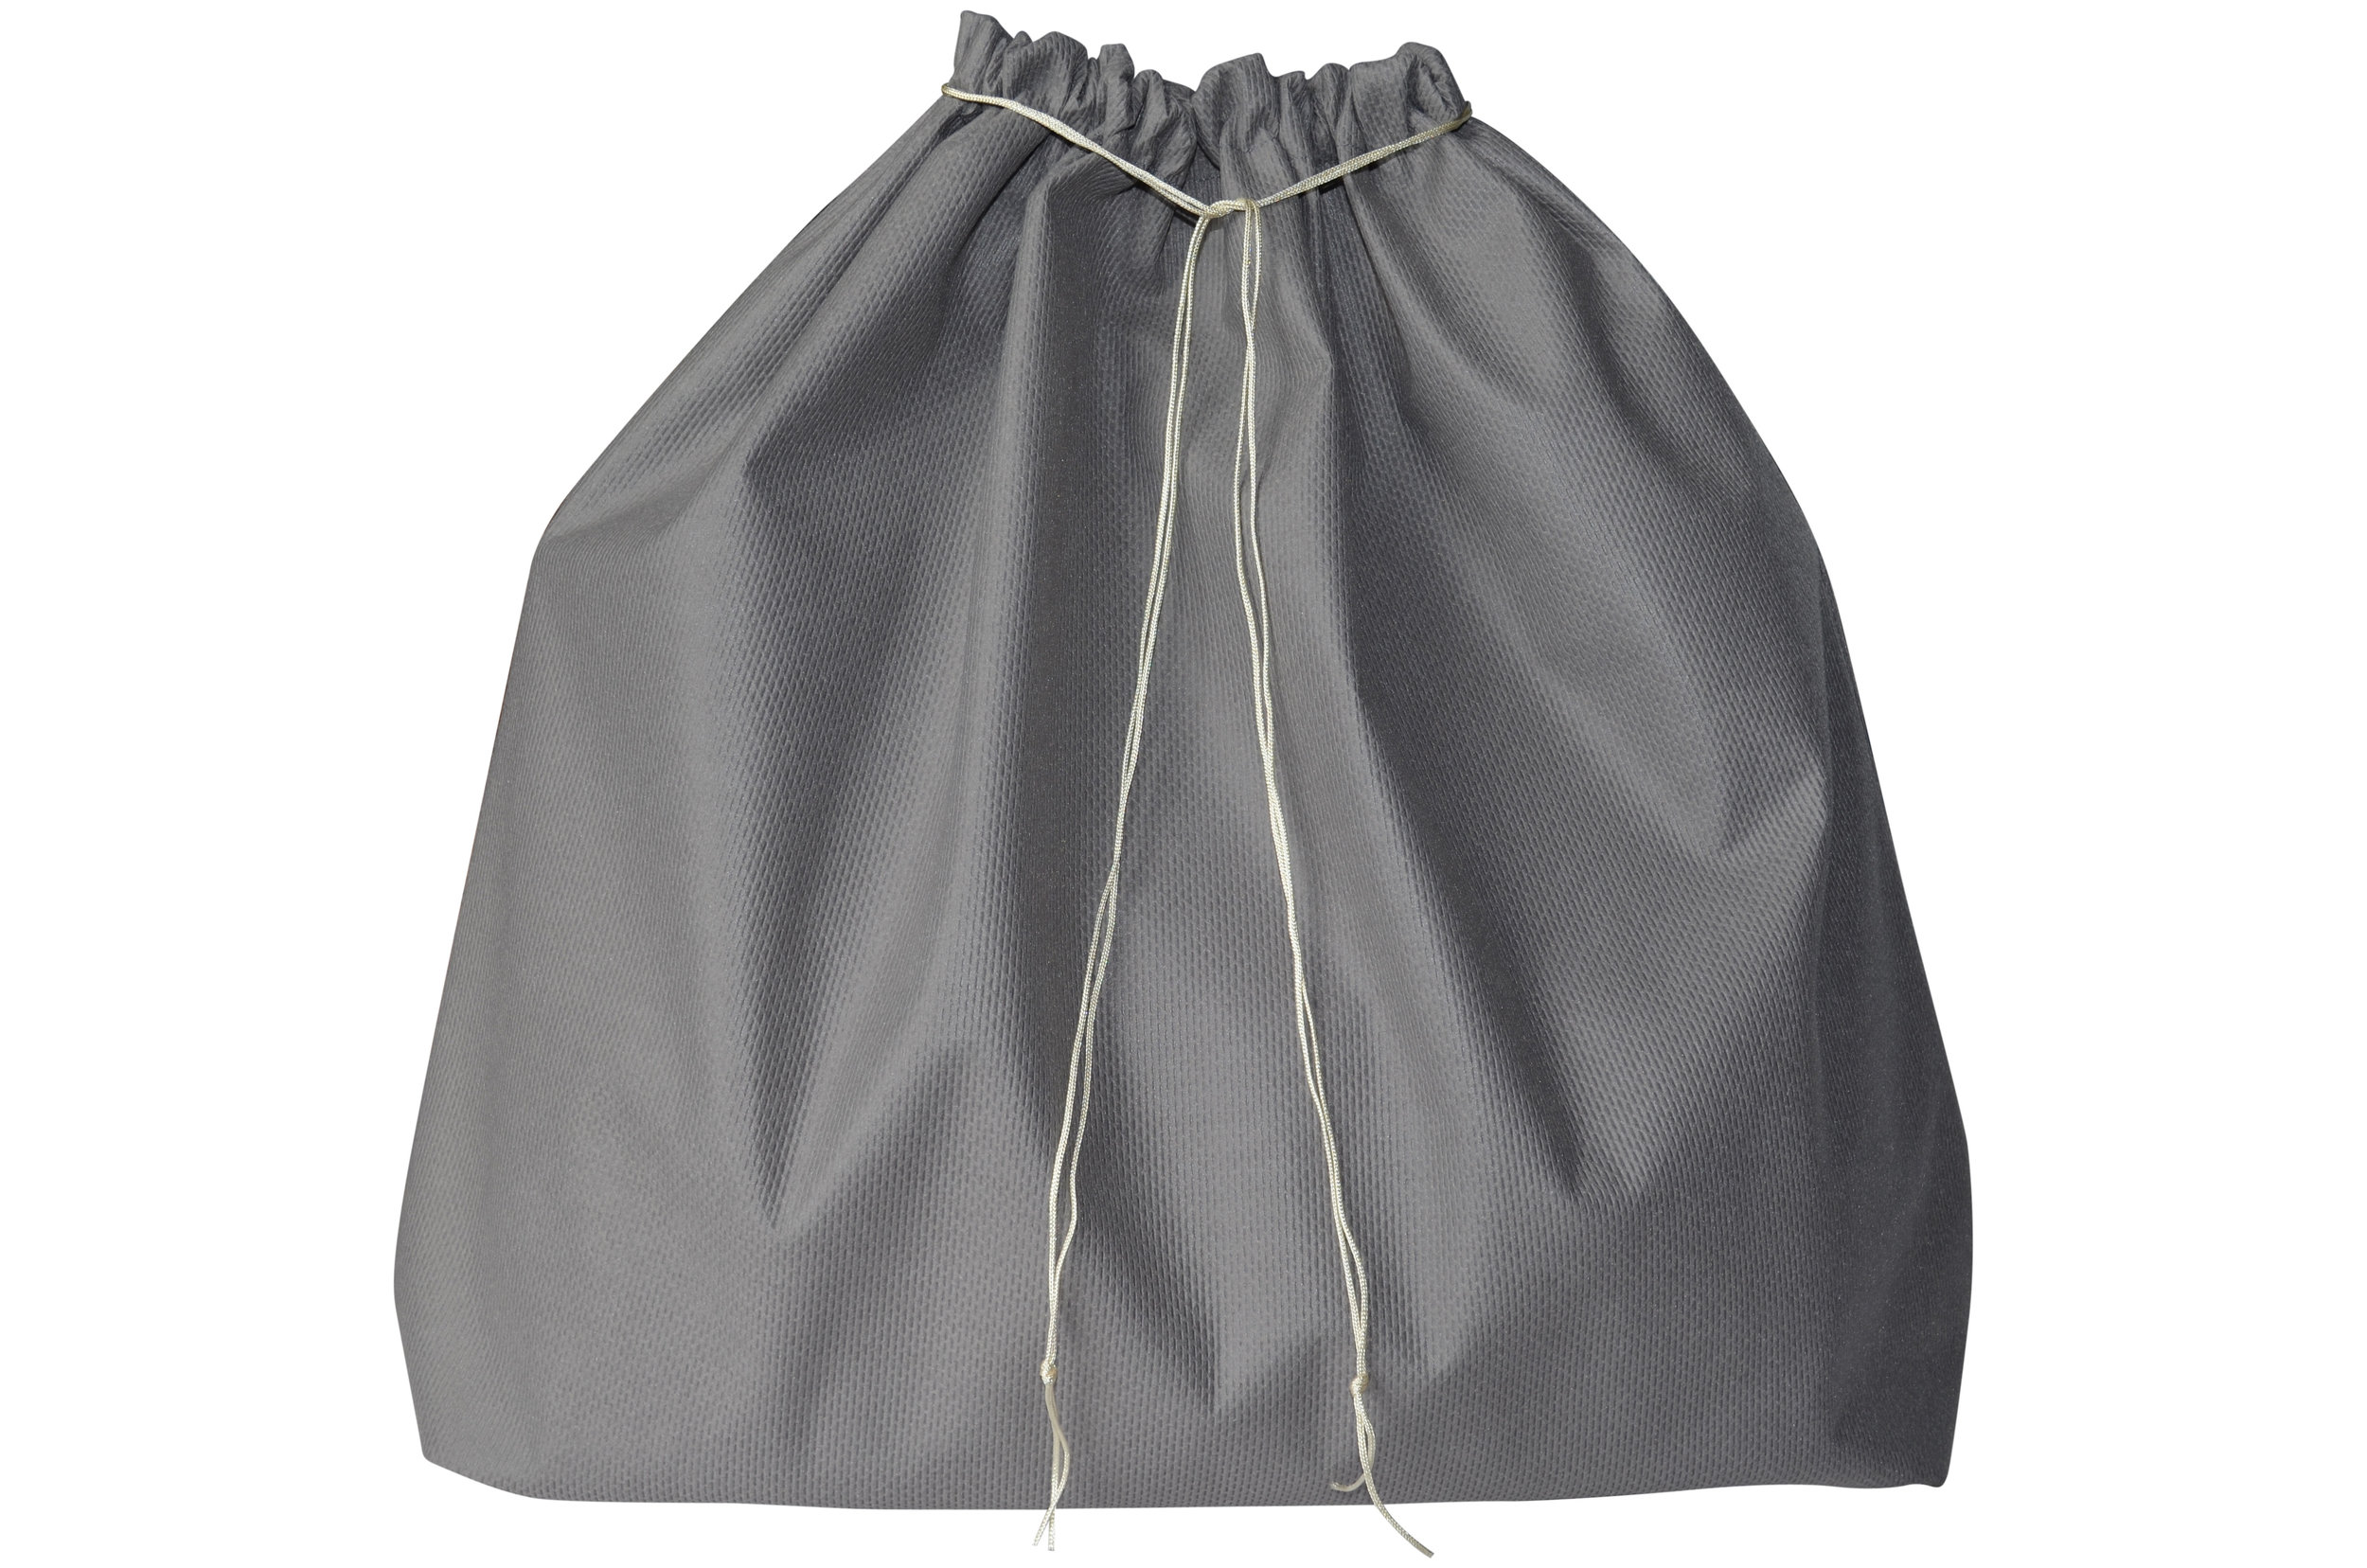 Protective Grey Dust Bag for Leather Handbags